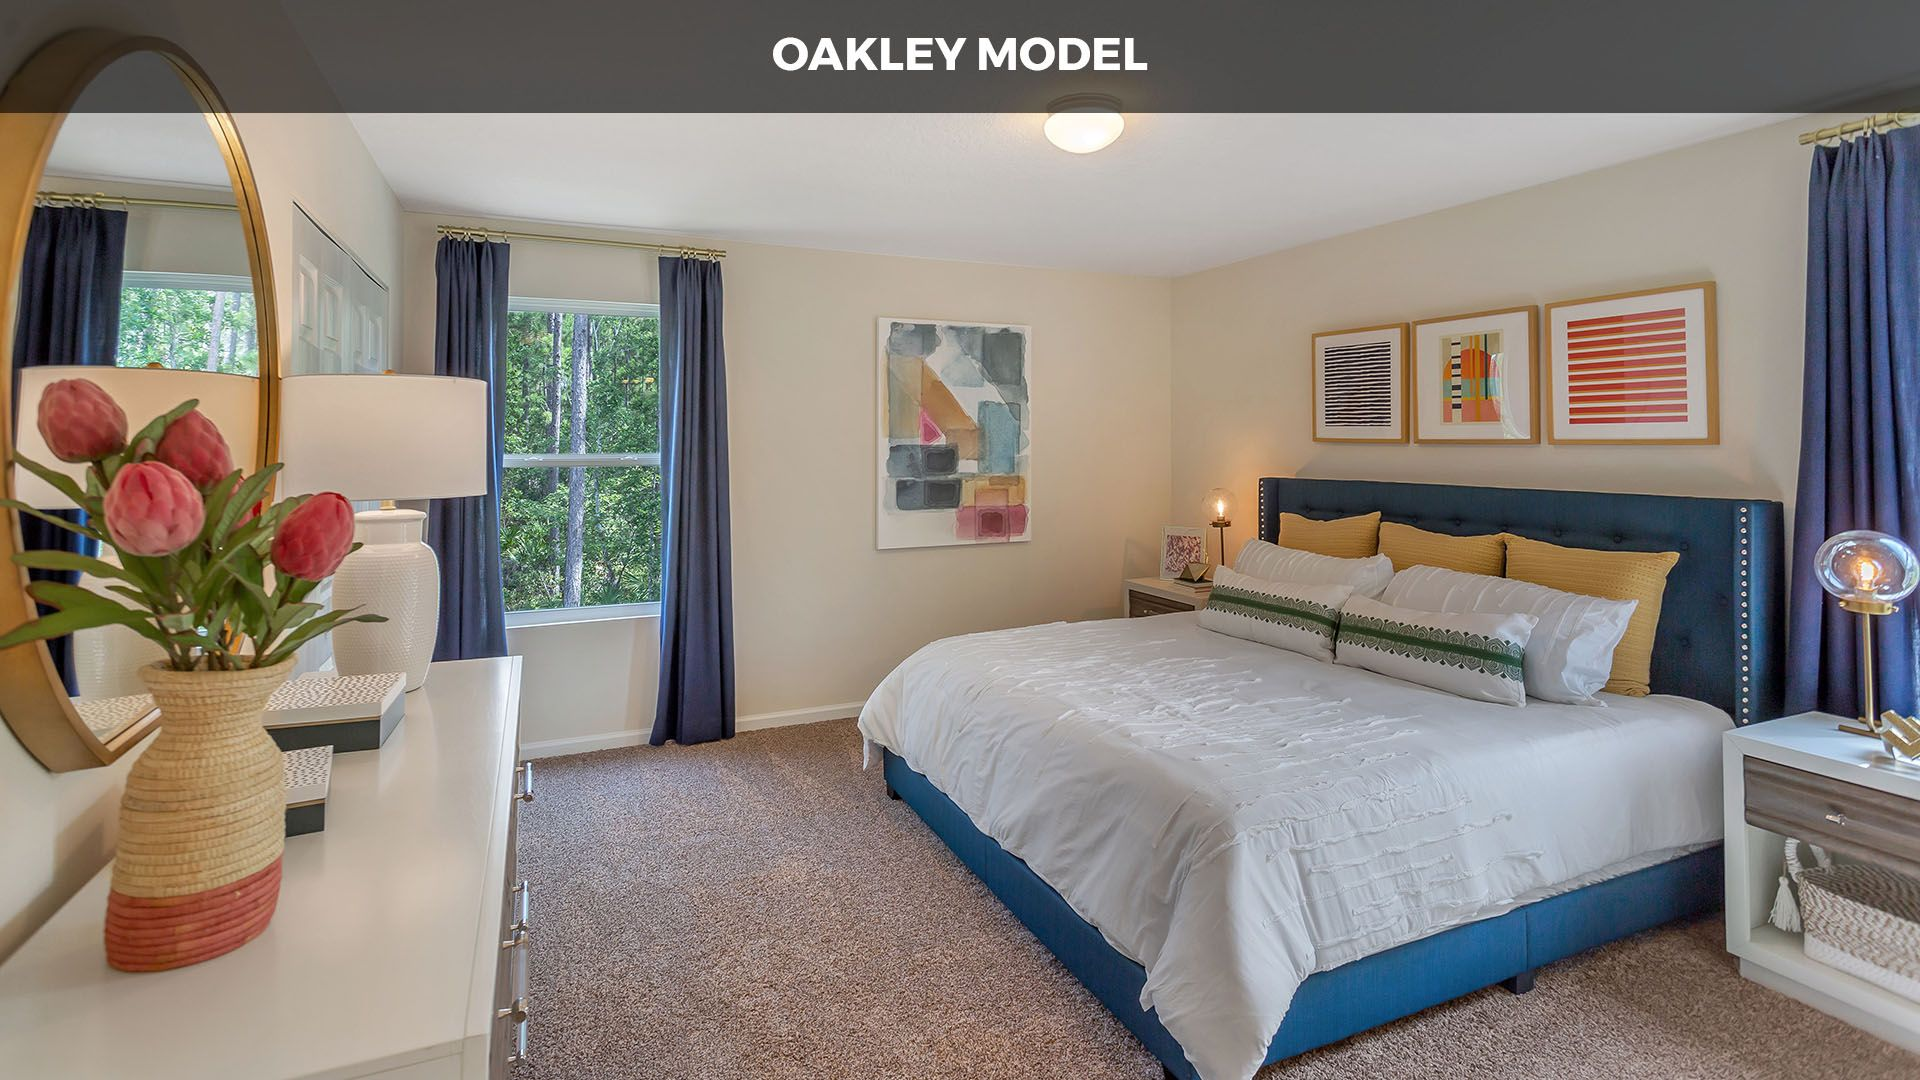 Bedroom featured in the OAKLEY By D.R. Horton in Jacksonville-St. Augustine, FL